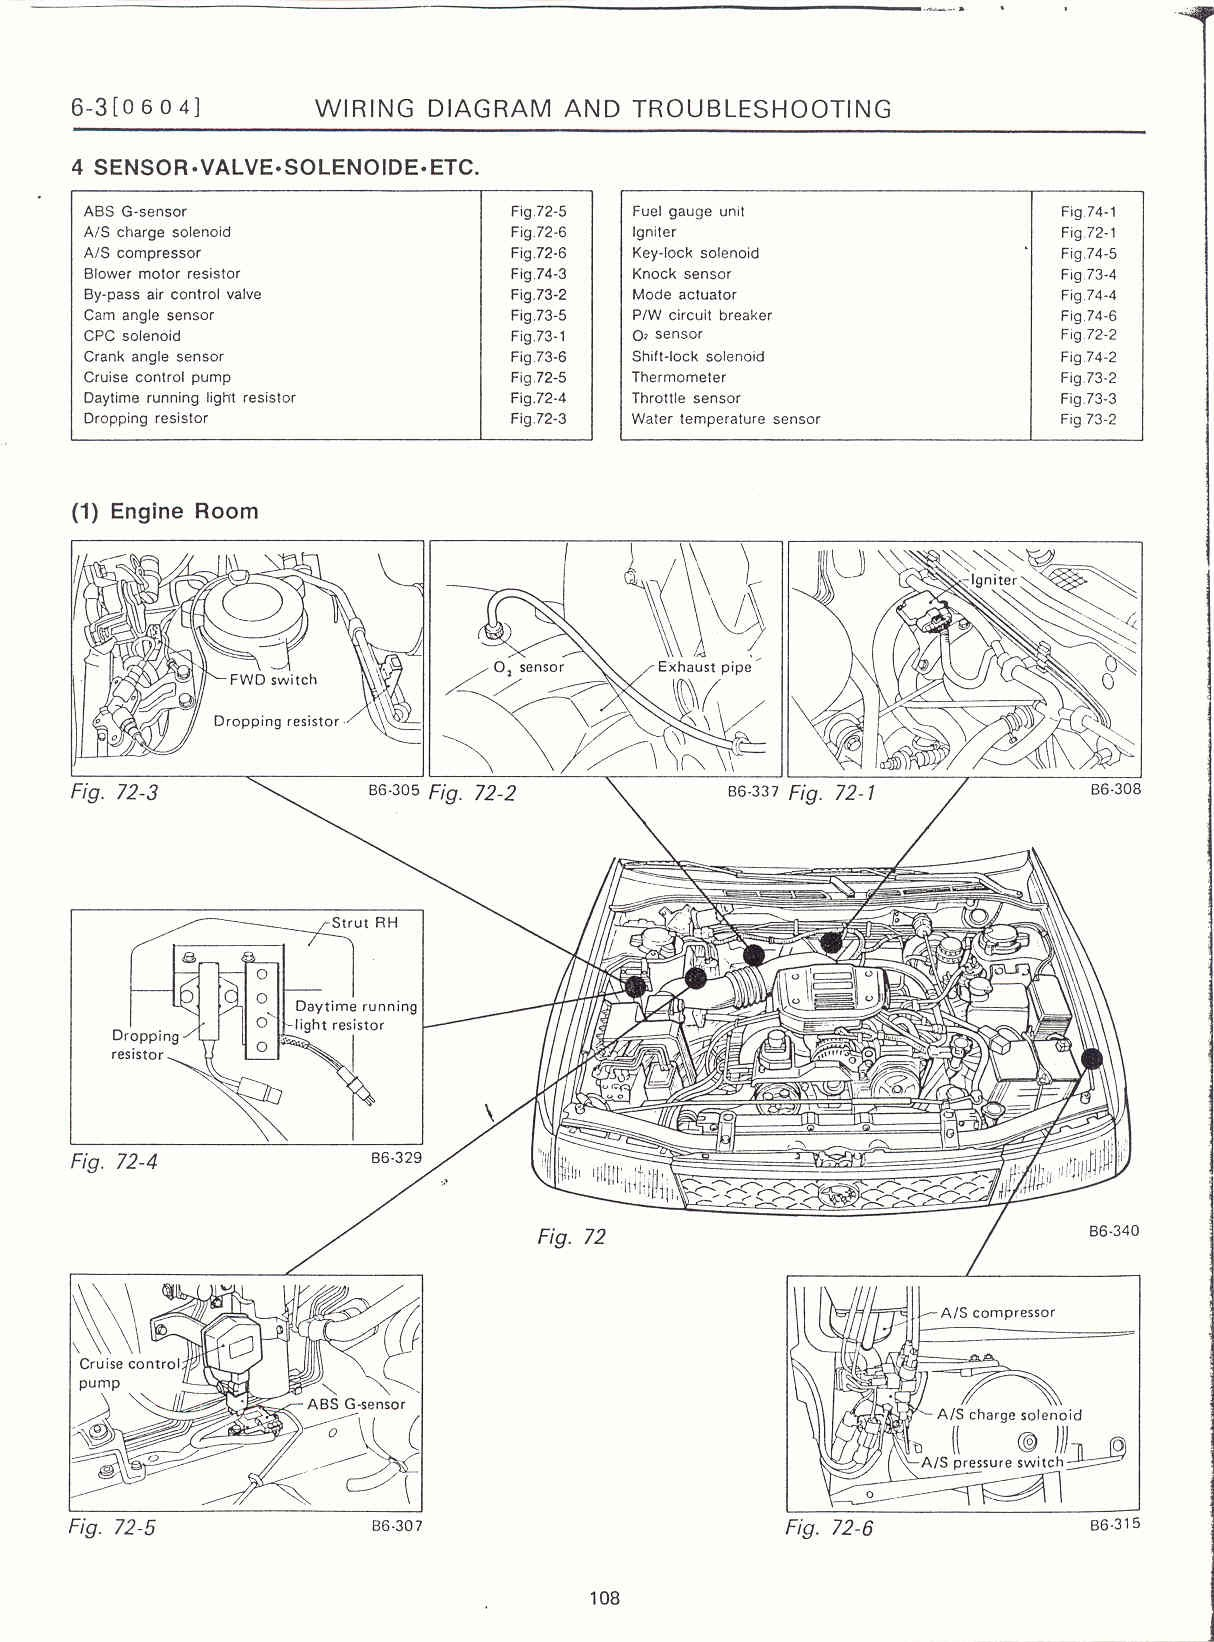 wrx engine bay diagram surrealmirage subaru legacy swap electrical